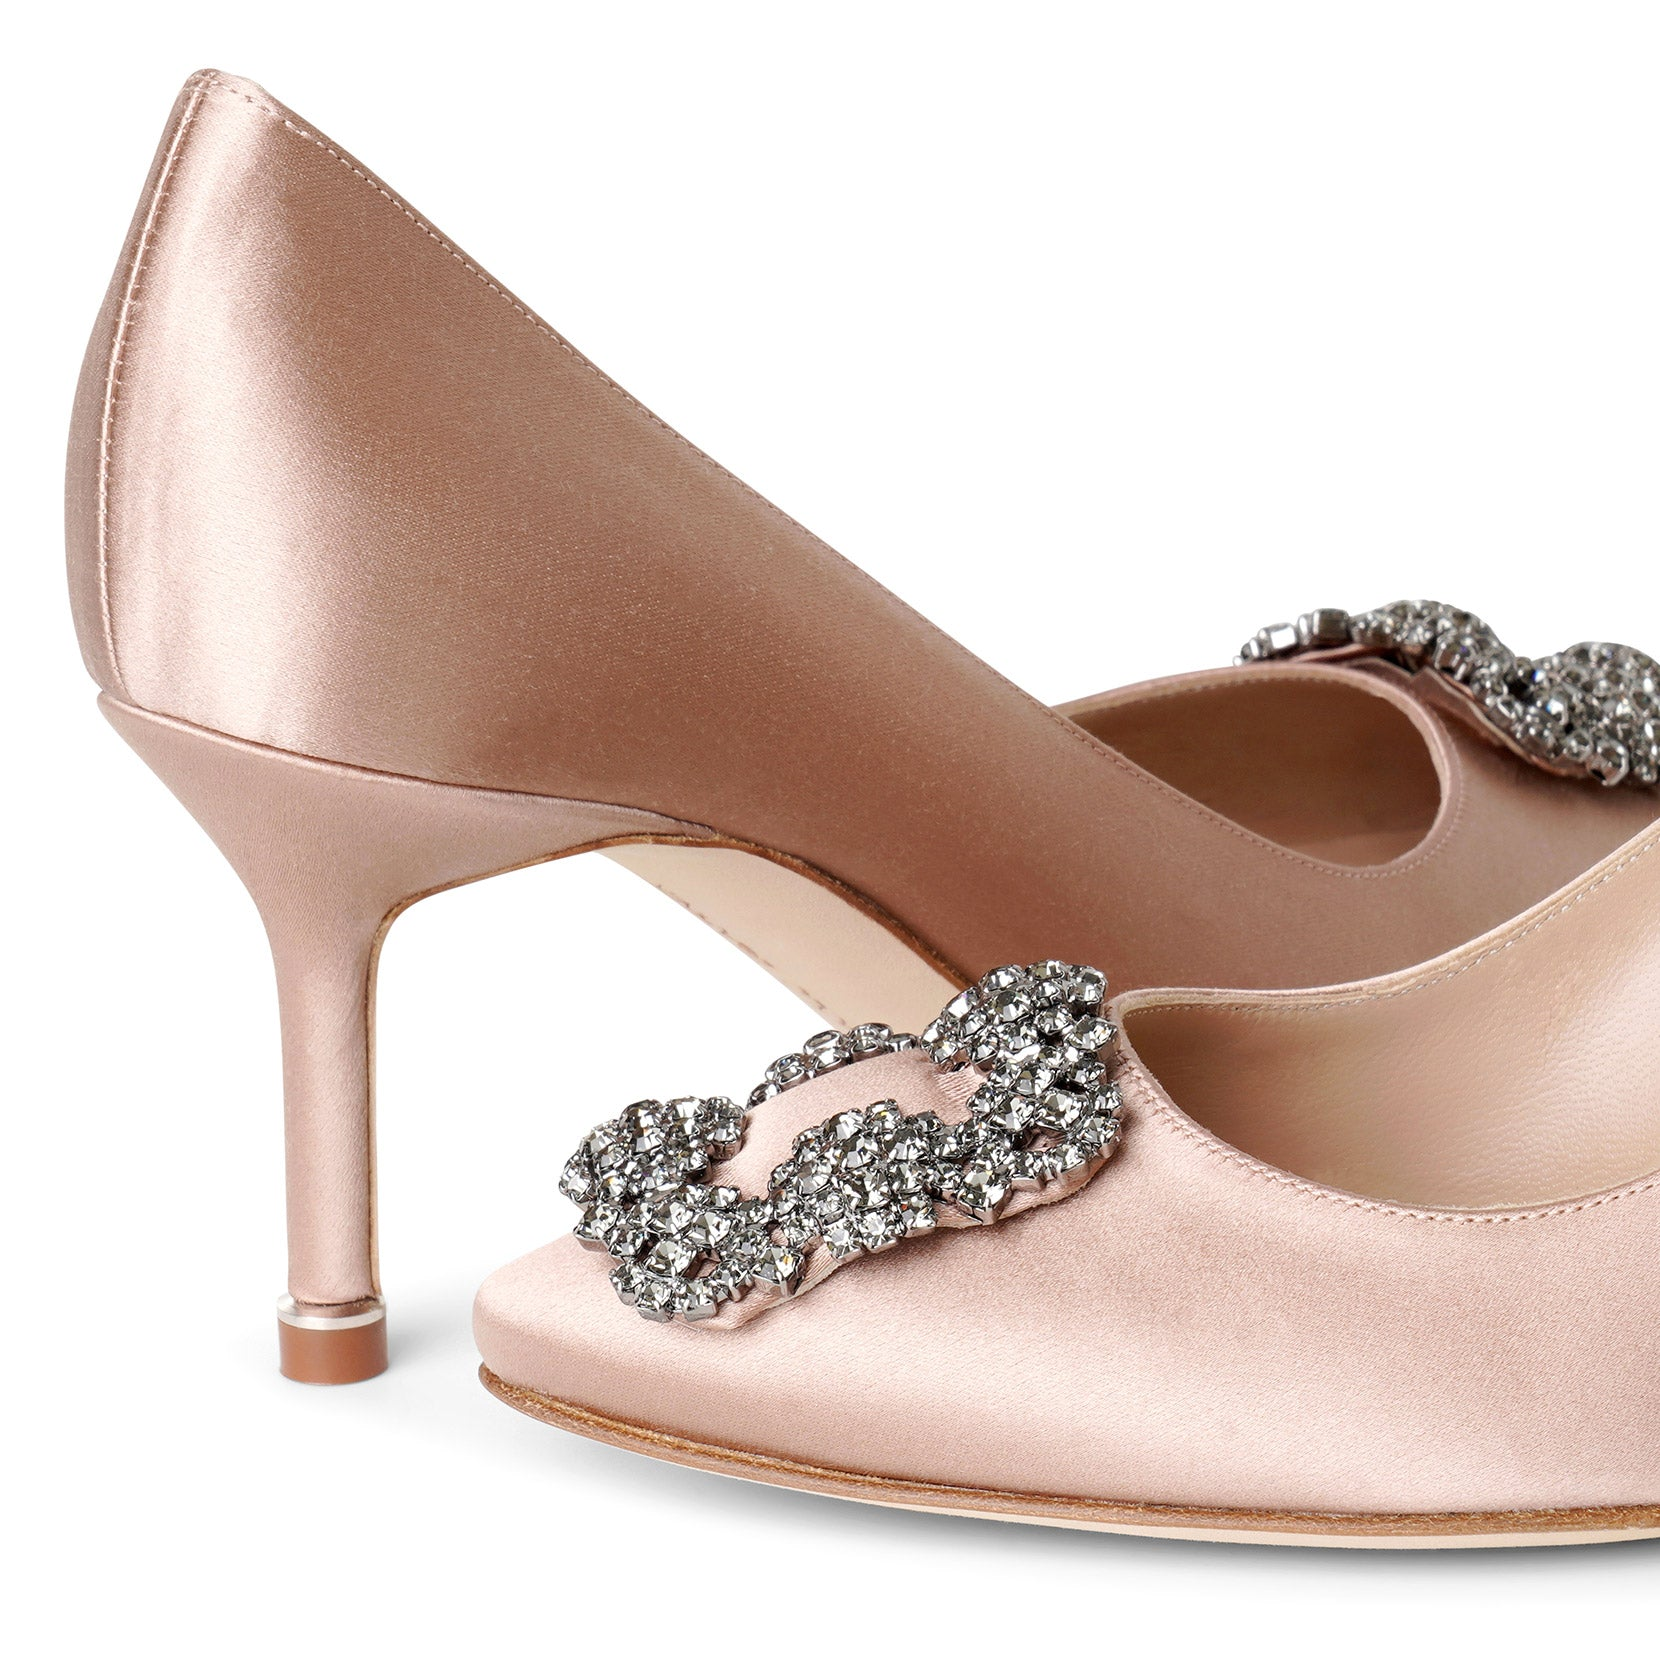 Hangisi 70 beige rose satin pumps